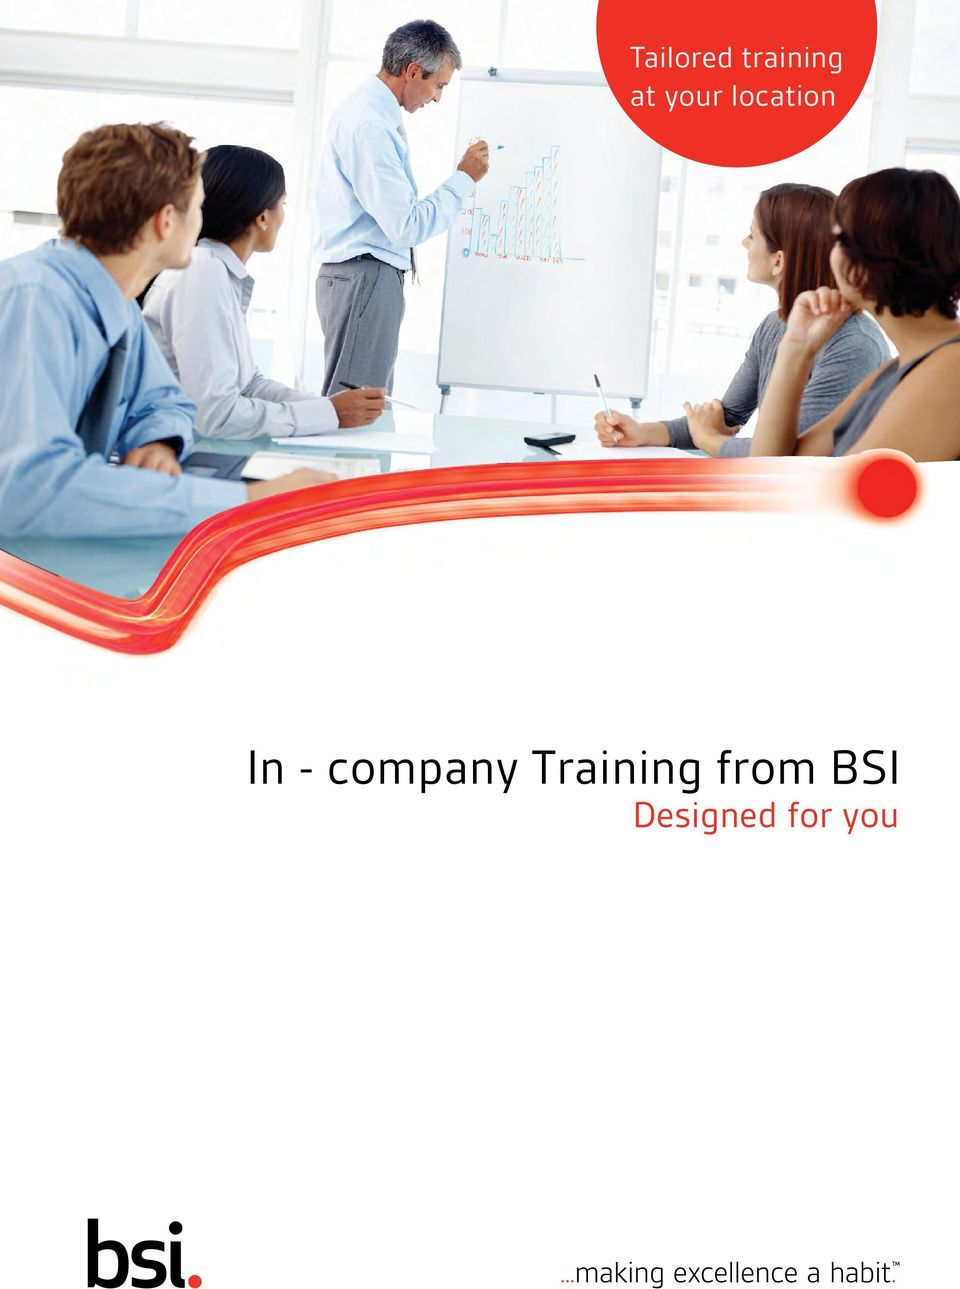 for you E-mail us on bsi.me@bsigroup.